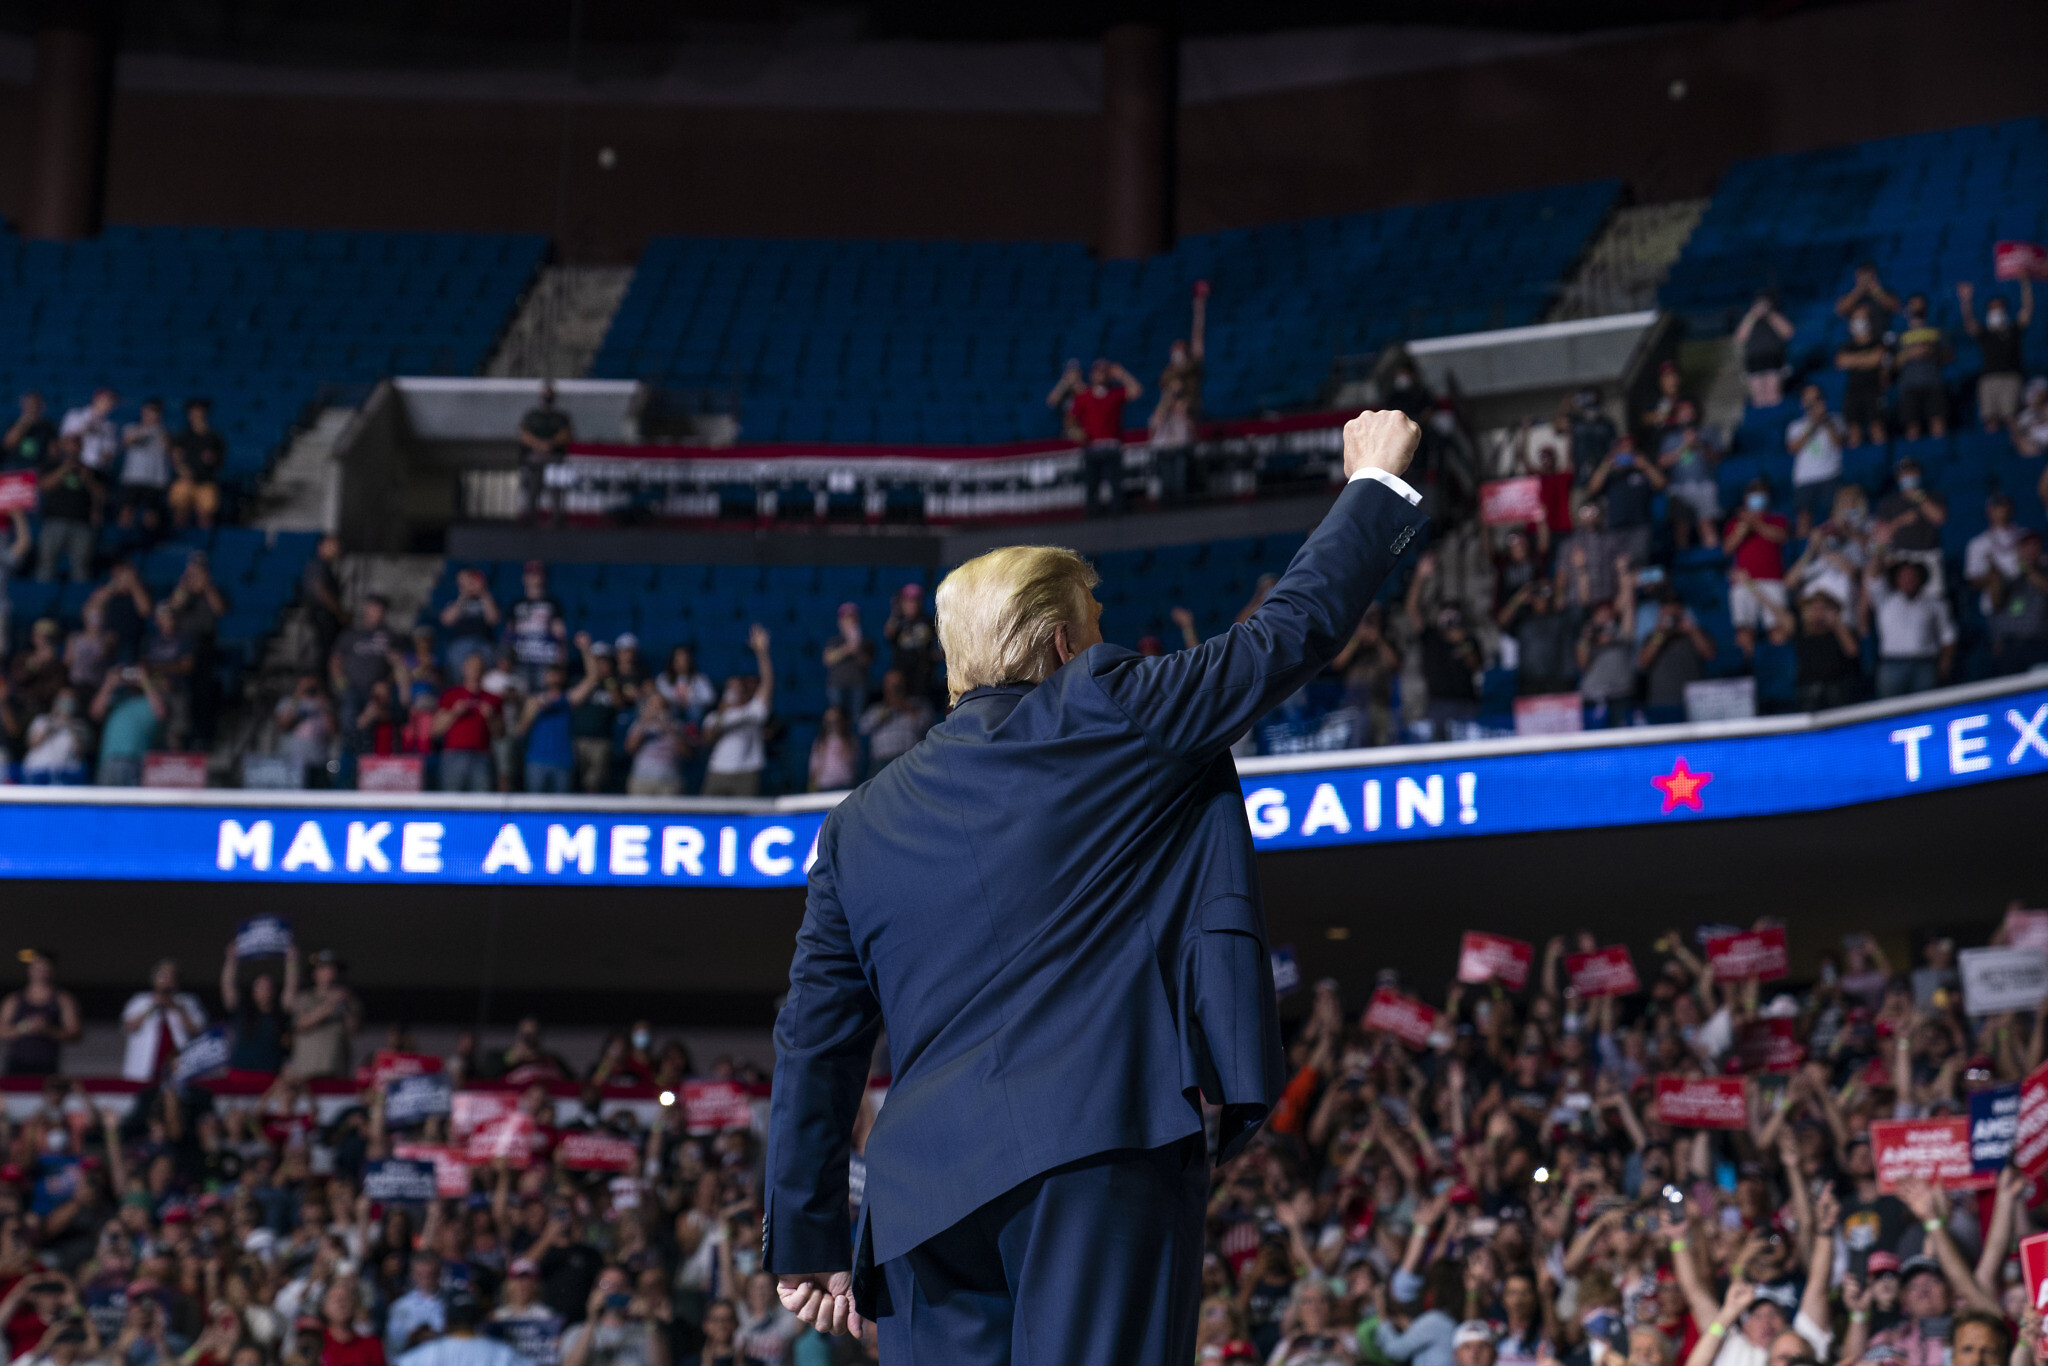 Netizens Ridicule Trump Rally as Actual Attendance Far Below Touted Numbers